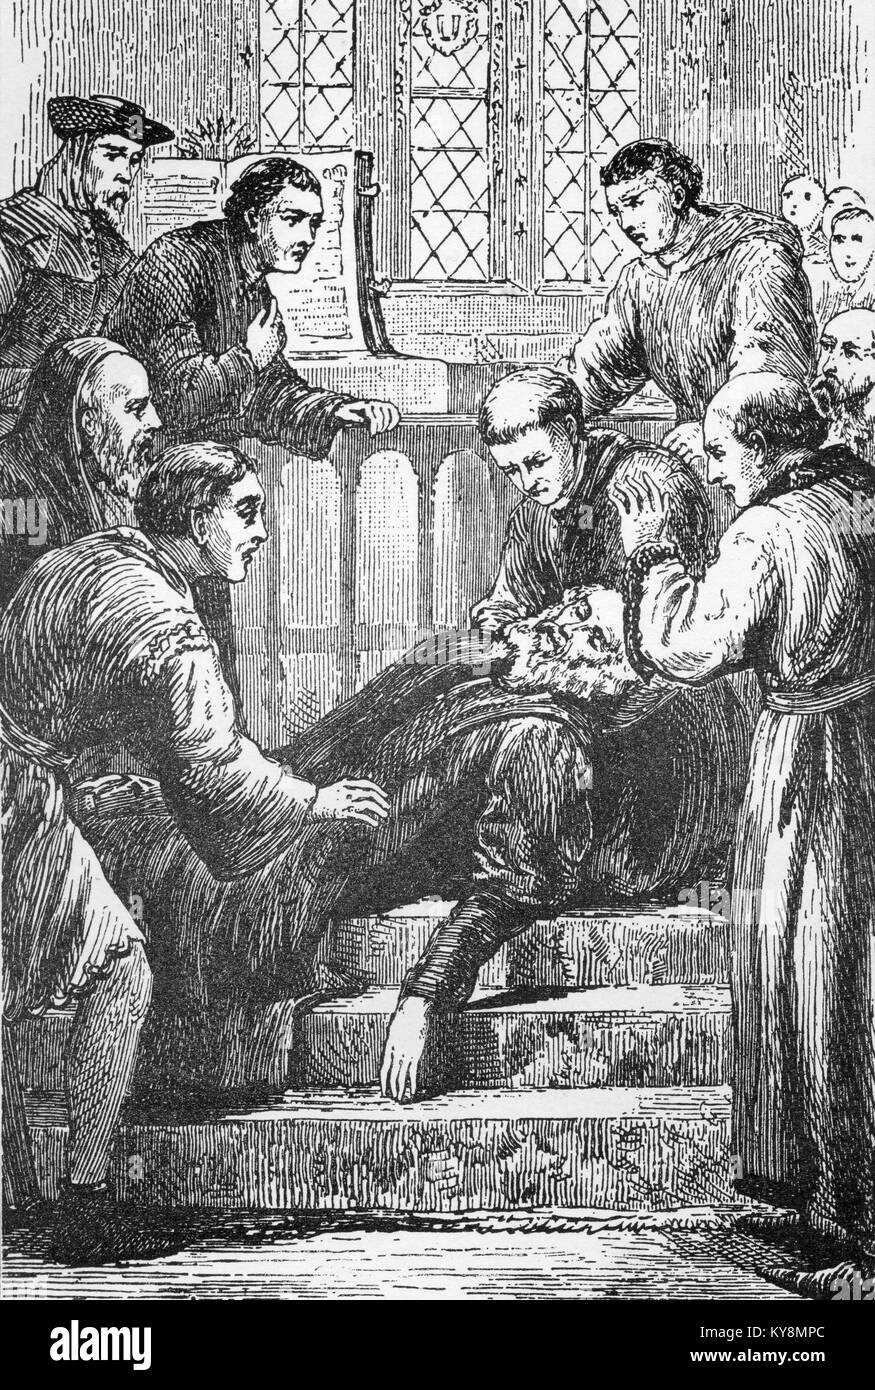 Line drawing of the death of pioneering English Bible Translator and Reformer, John Wycliffe. - Stock Image